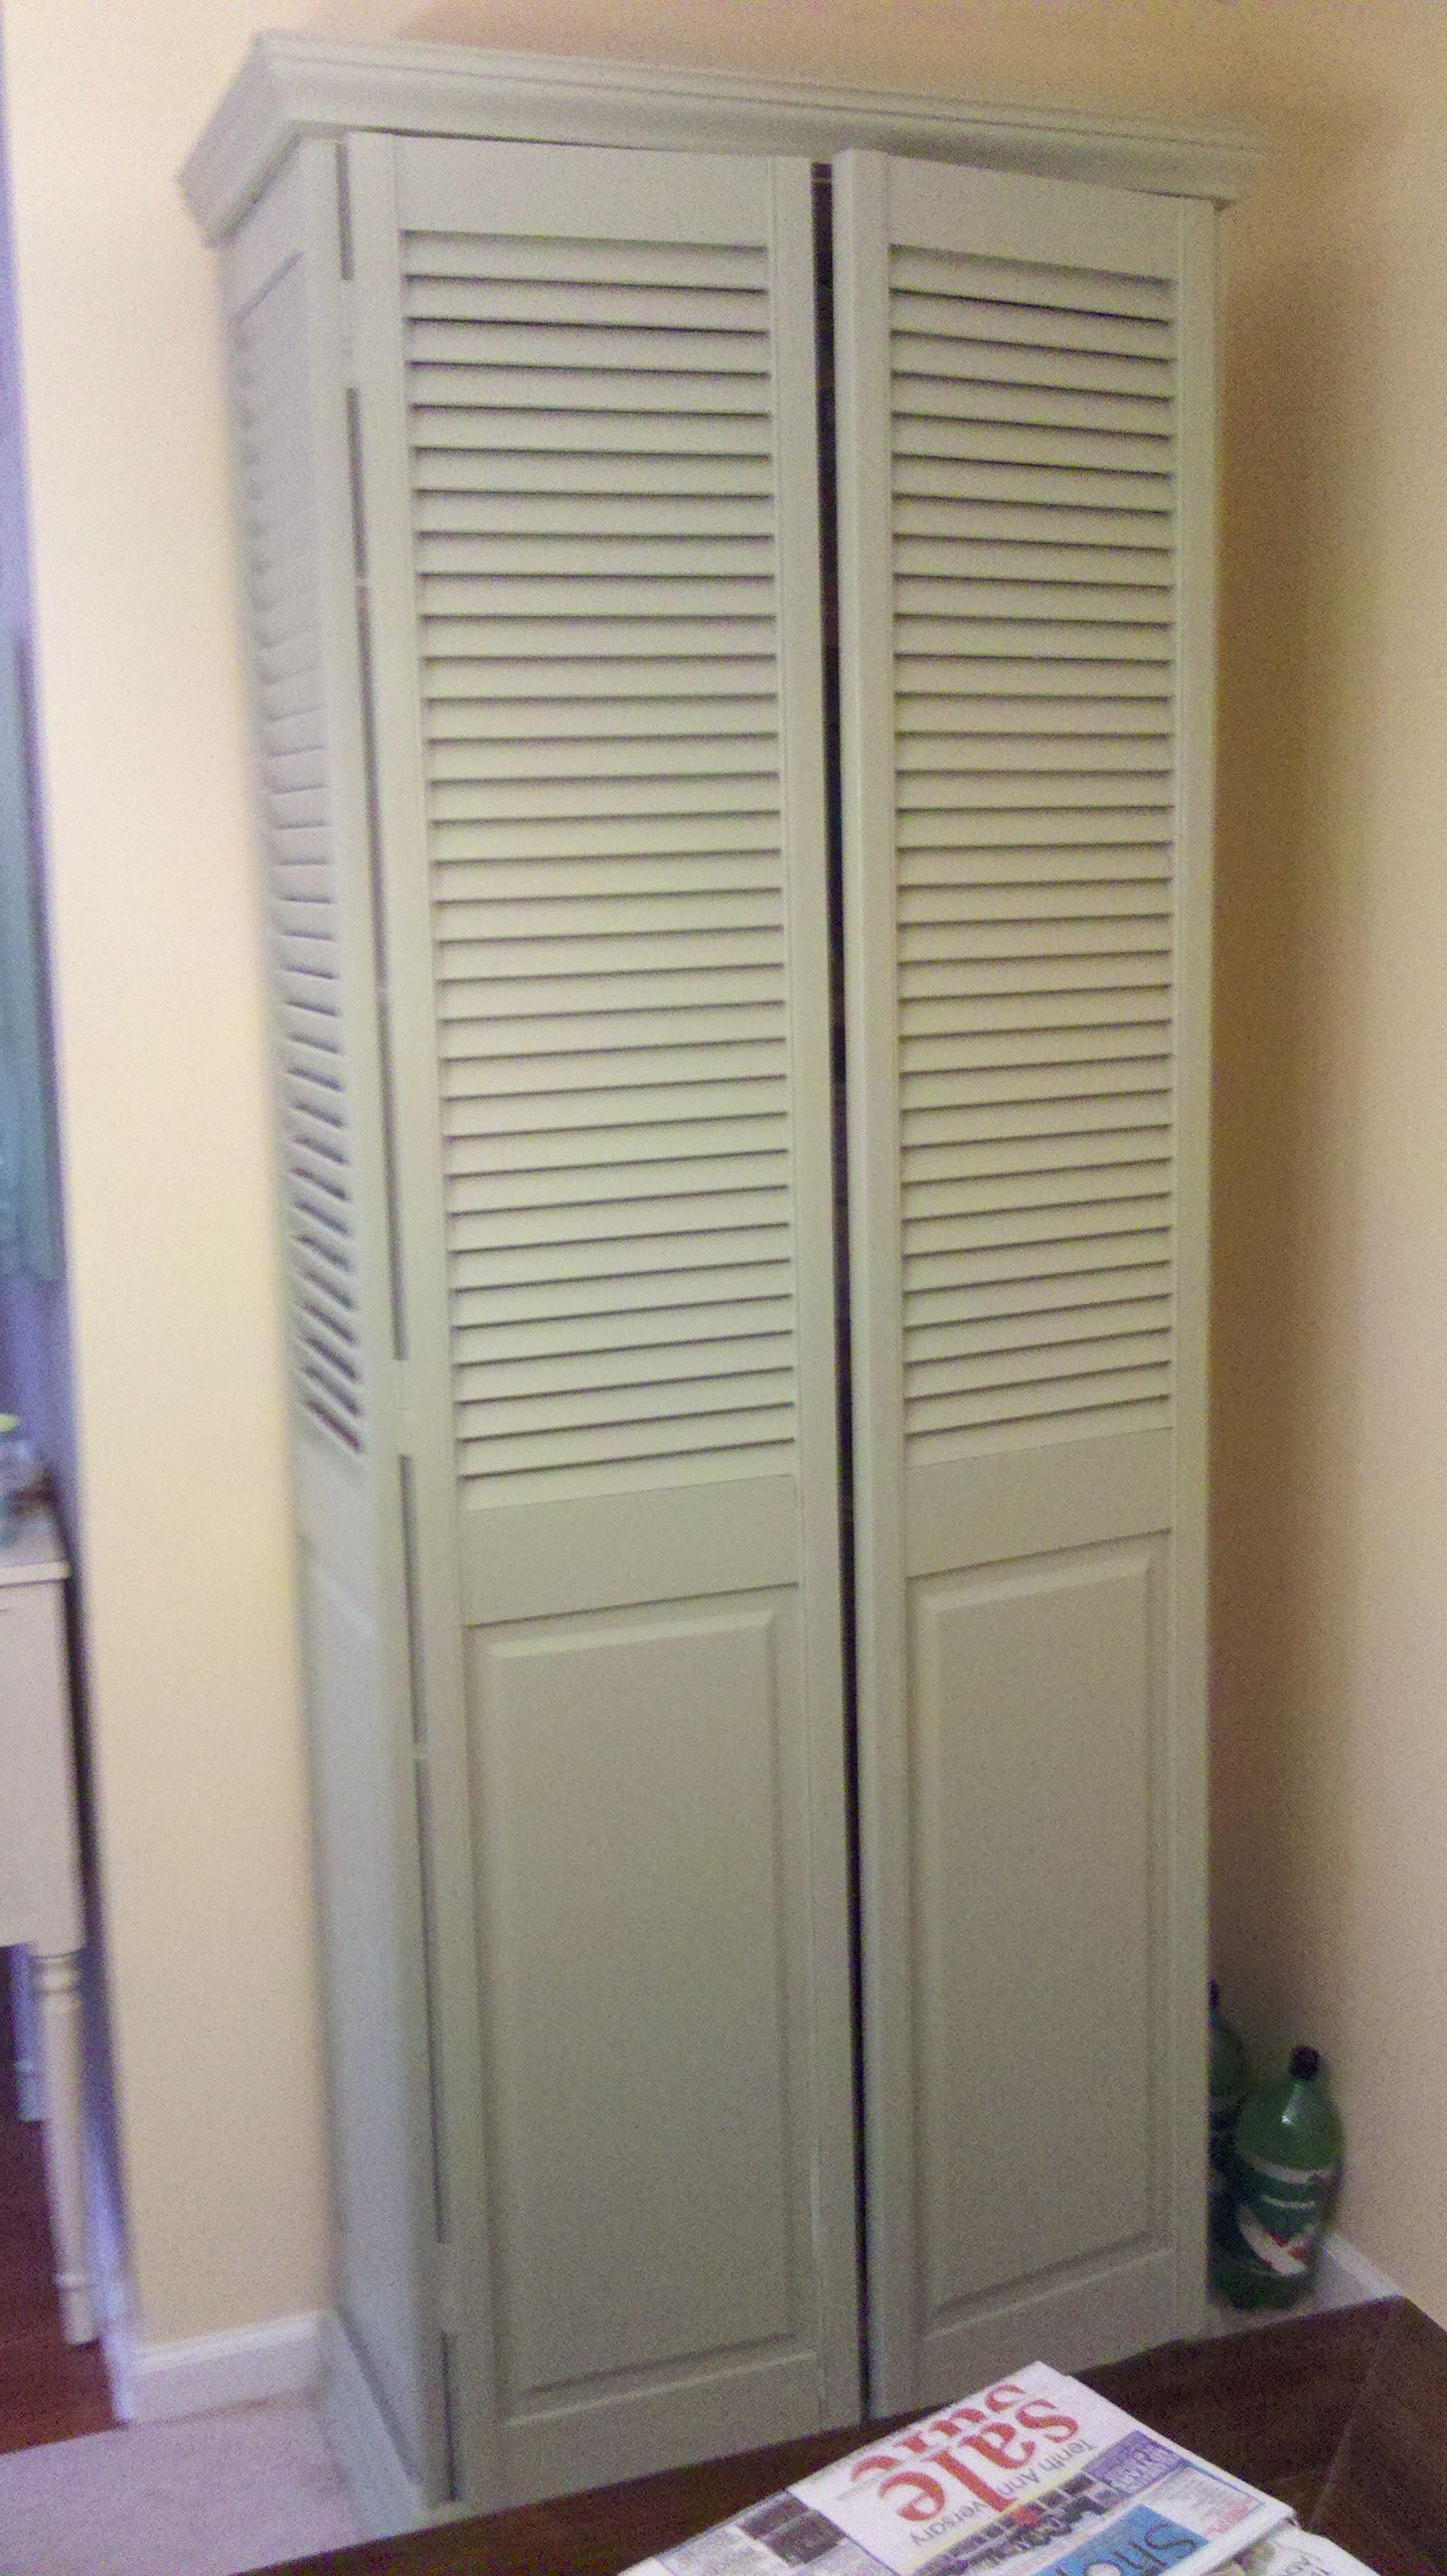 Pantry Created With Bi Fold Doors There Is Never A Shortage Of Bi Folds Here Old Closet Doors Bifold Closet Doors Bifold Doors